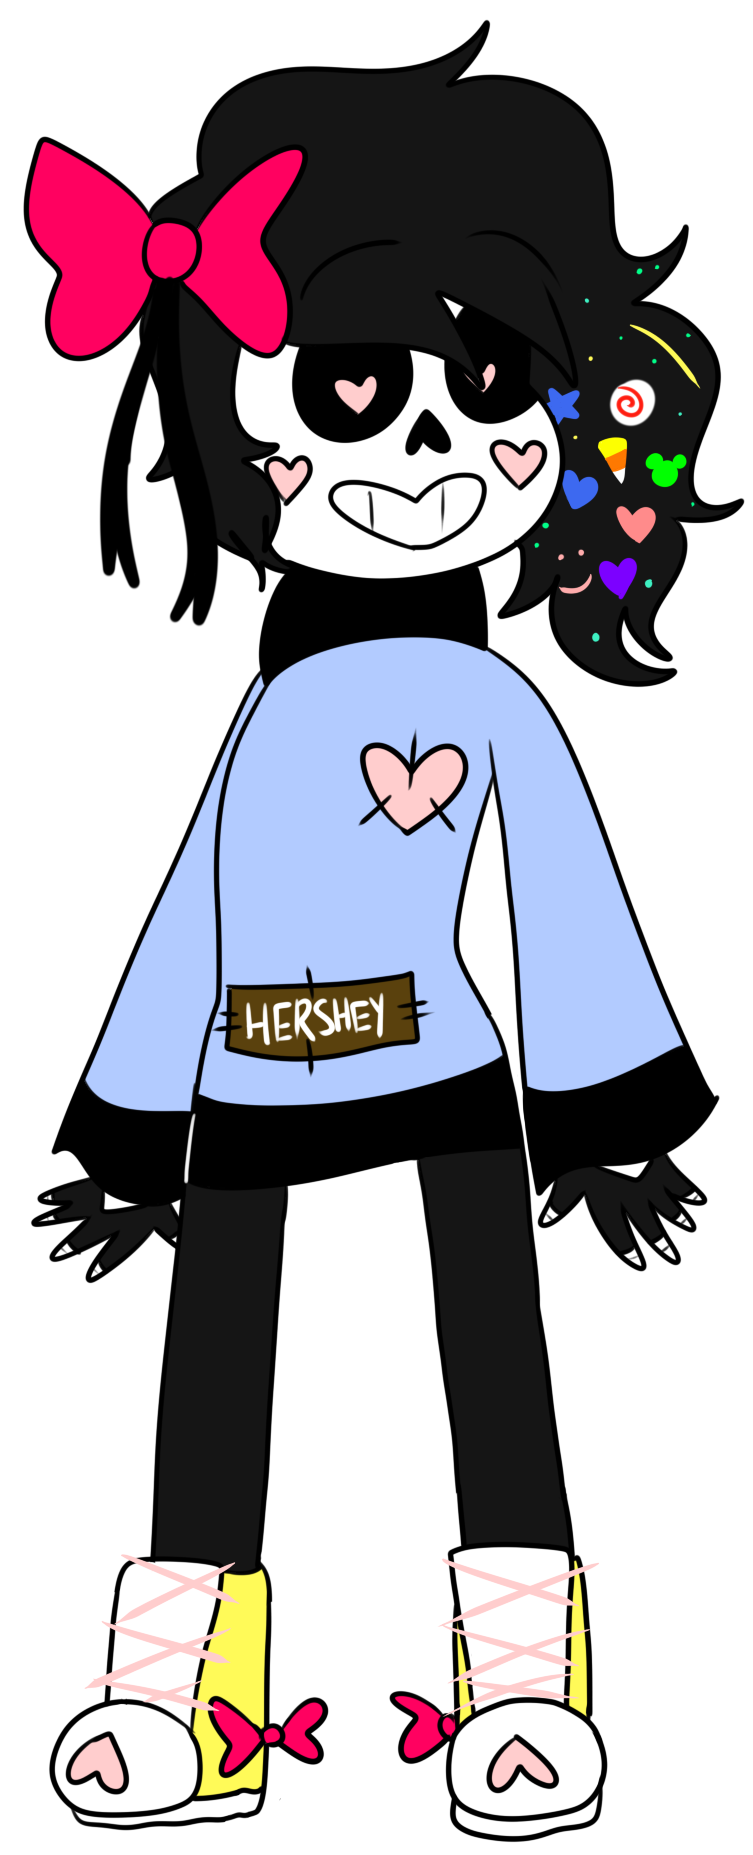 Conversation clipart roleplay. Emily undertale rp wikia